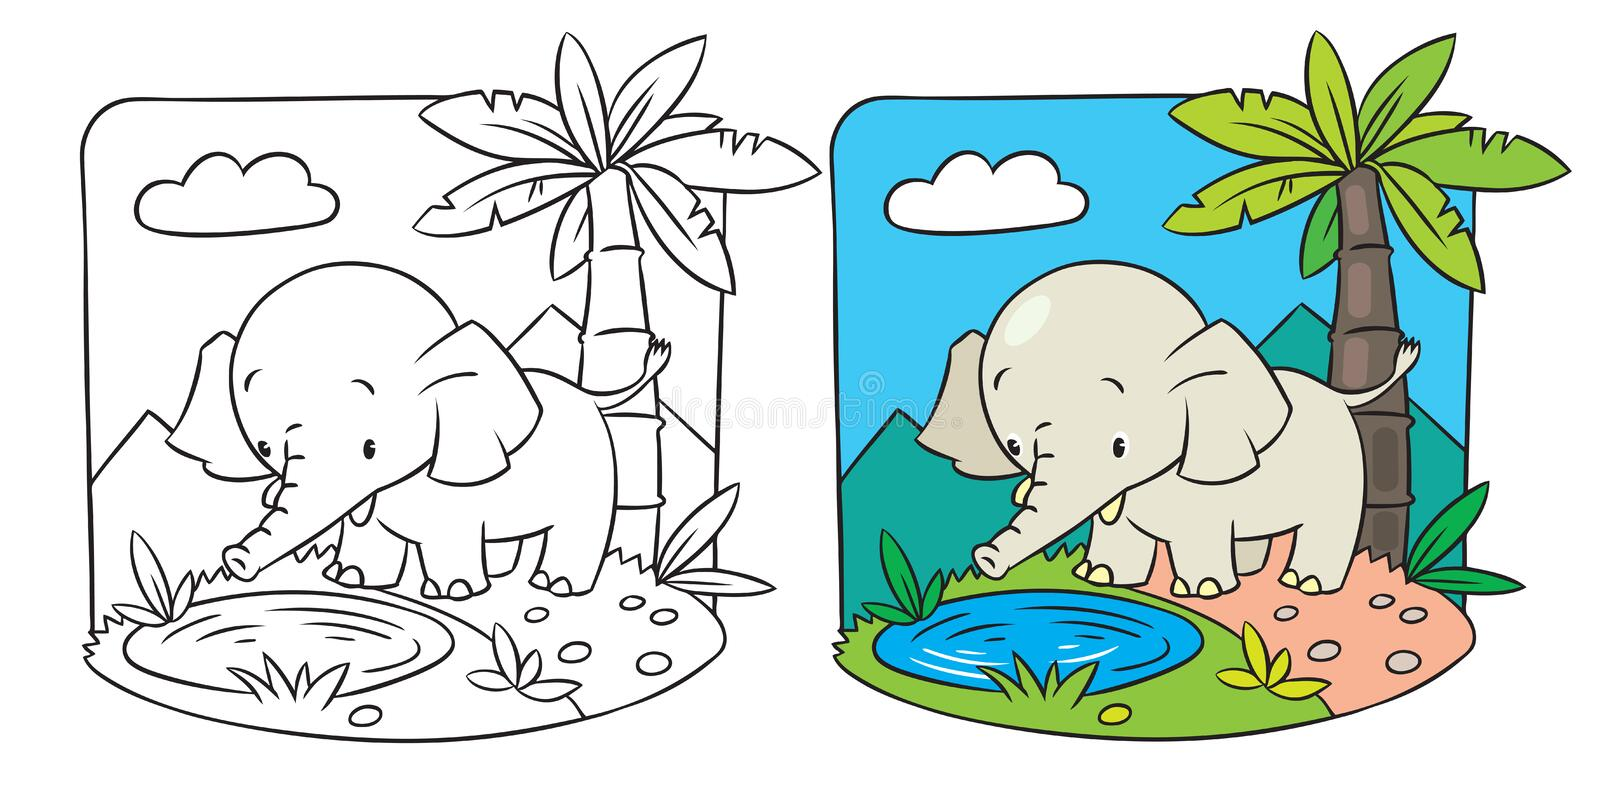 Elephant. Coloring book stock illustration